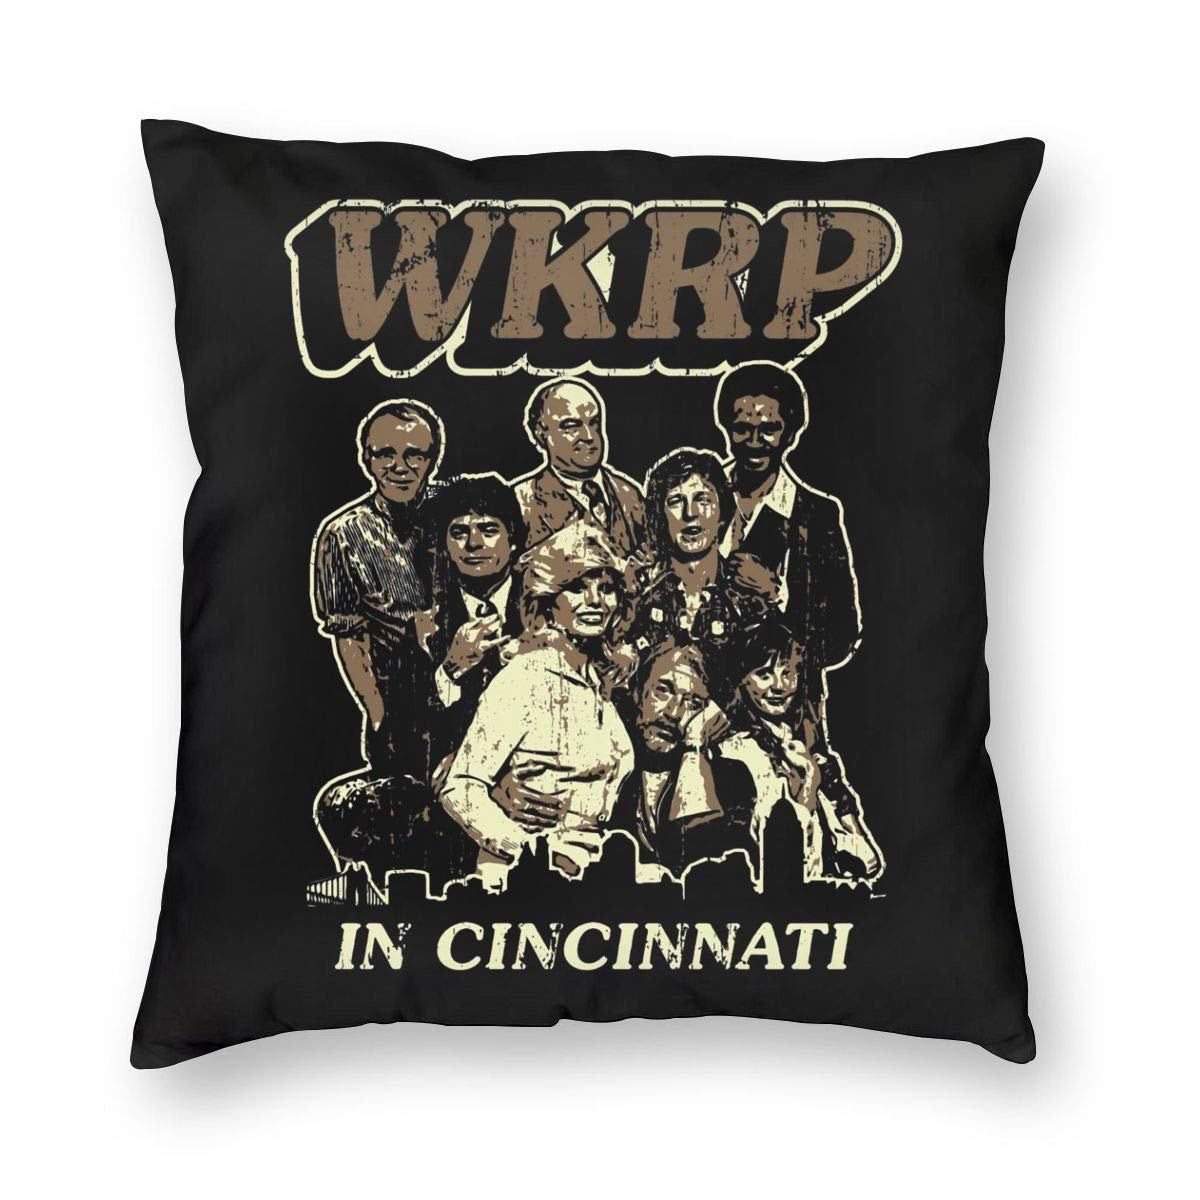 Amazon.com: Lemonnnen WKRP in Cincinnati - Cojín cuadrado ...